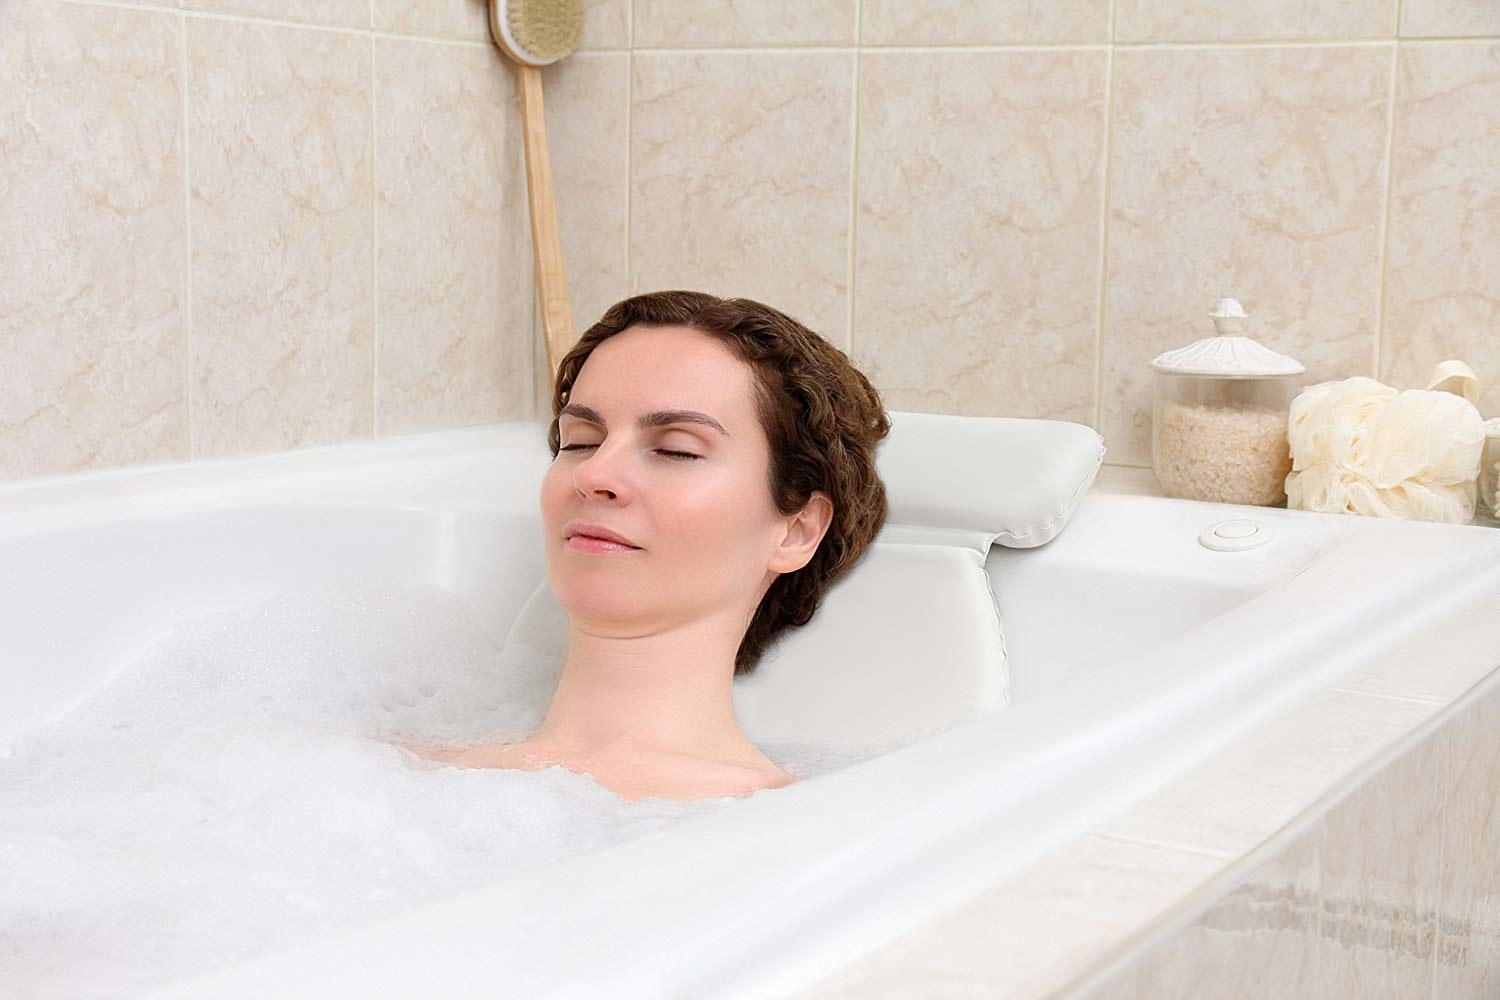 Model resting their head on the bath pillow while in a bubble bath